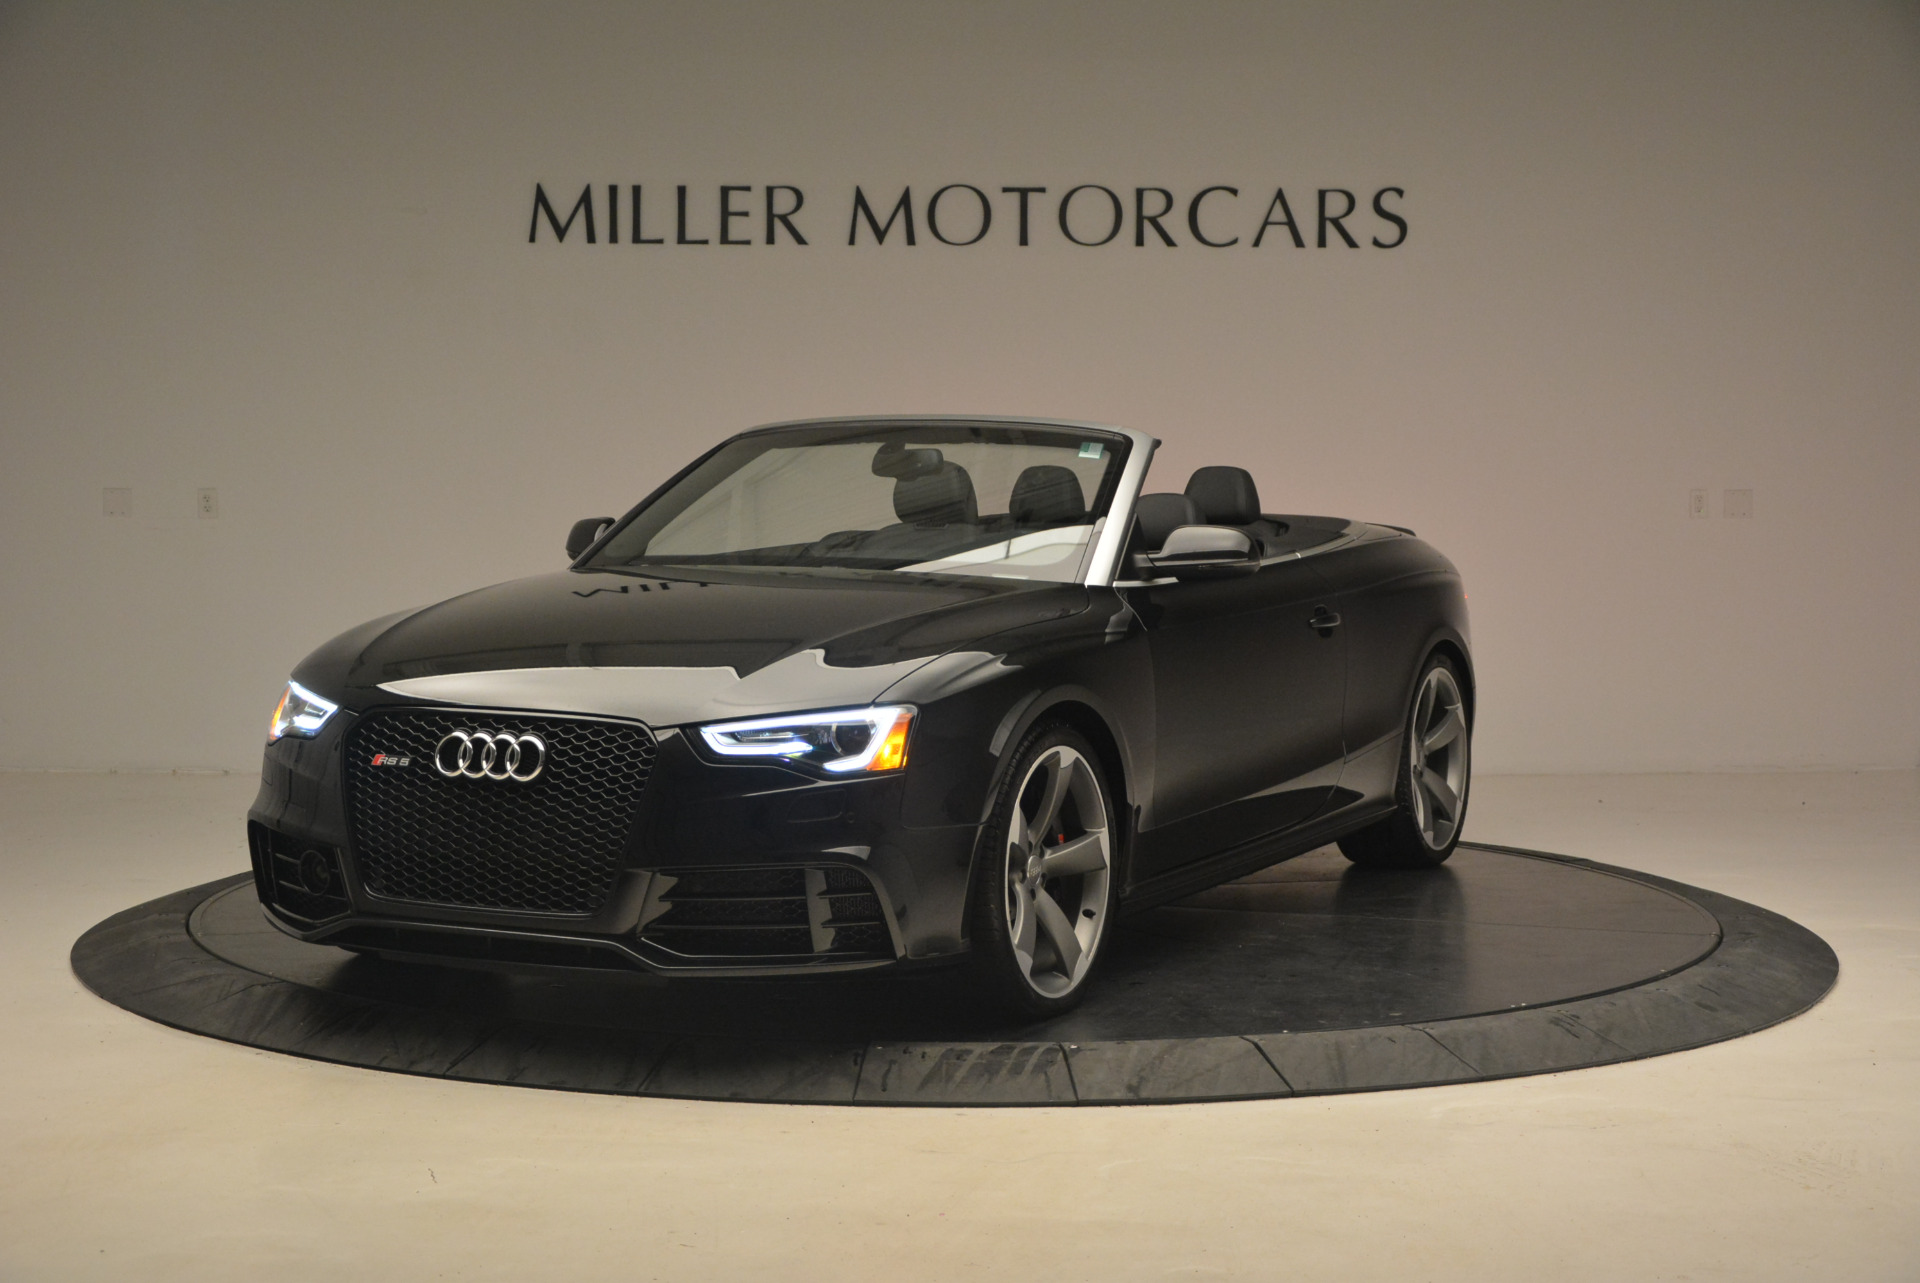 Used 2014 Audi RS 5 quattro for sale Sold at Aston Martin of Greenwich in Greenwich CT 06830 1